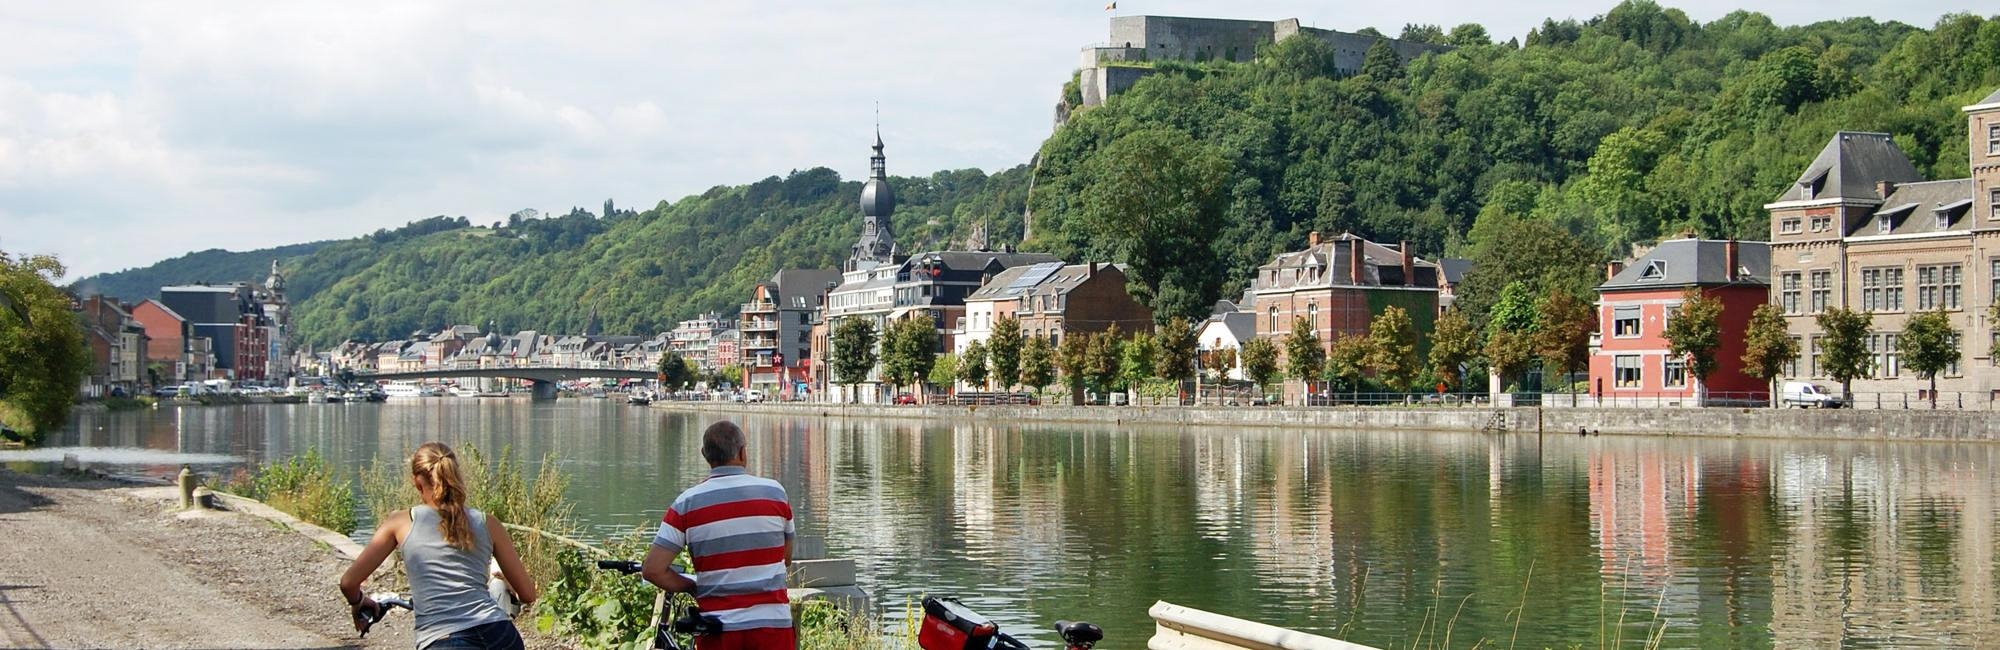 Dutch Bike Tours Cycling holiday Along the Meuse from Maastricht to Sedan